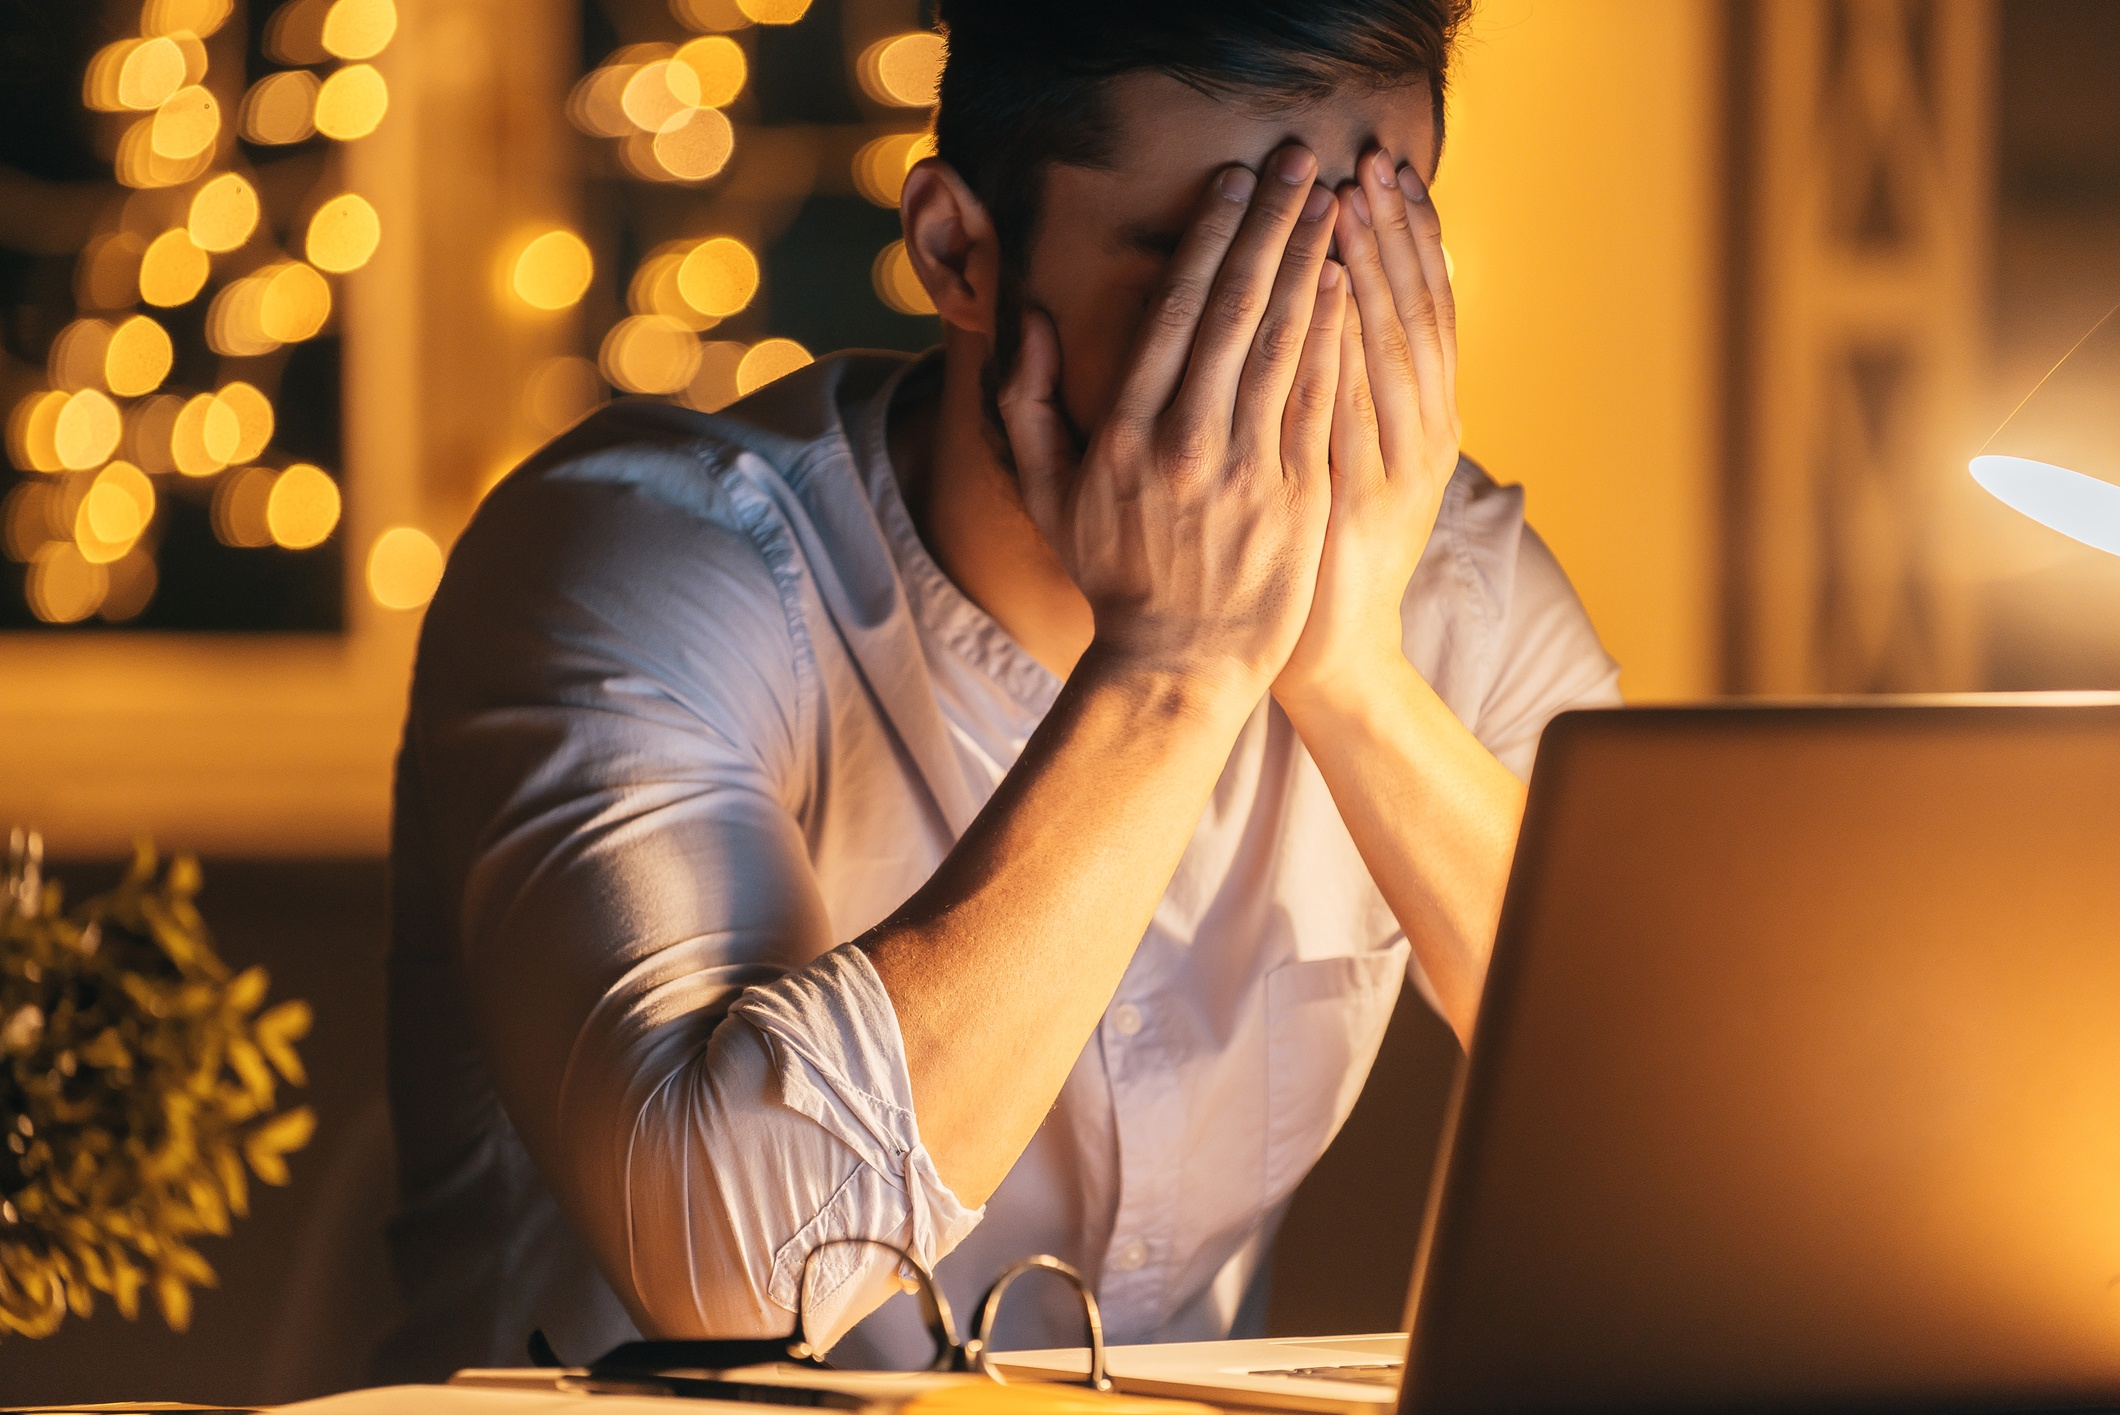 Absenteeism and presenteeism cost businesses billions of dollars each year. Focusing on wellness, paid time off (PTO) policies and employee benefits can help. Sick_at_work.Gstockstudio1.jpg